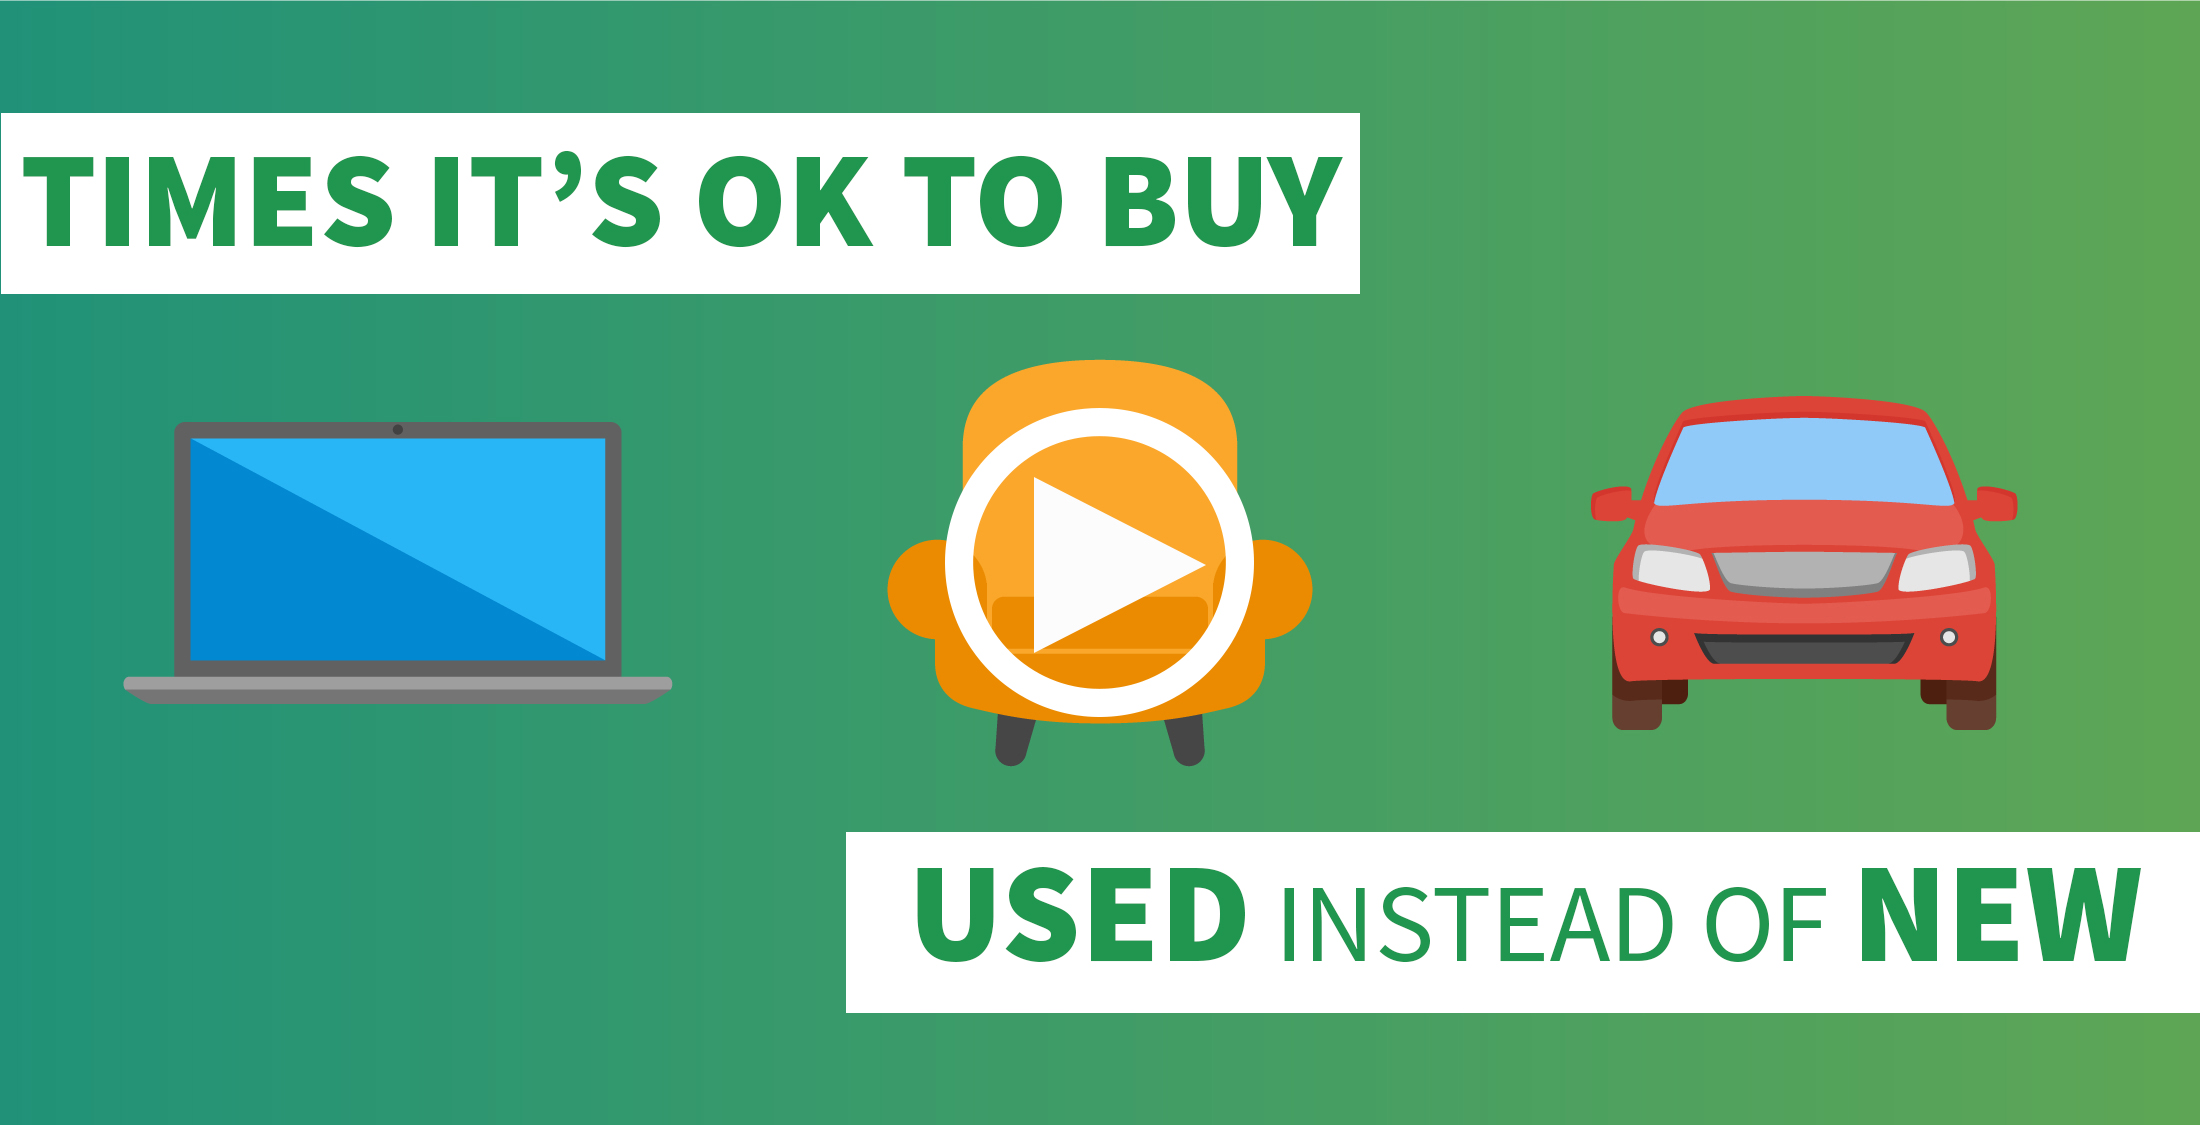 Times It's OK to Buy Used Instead of New